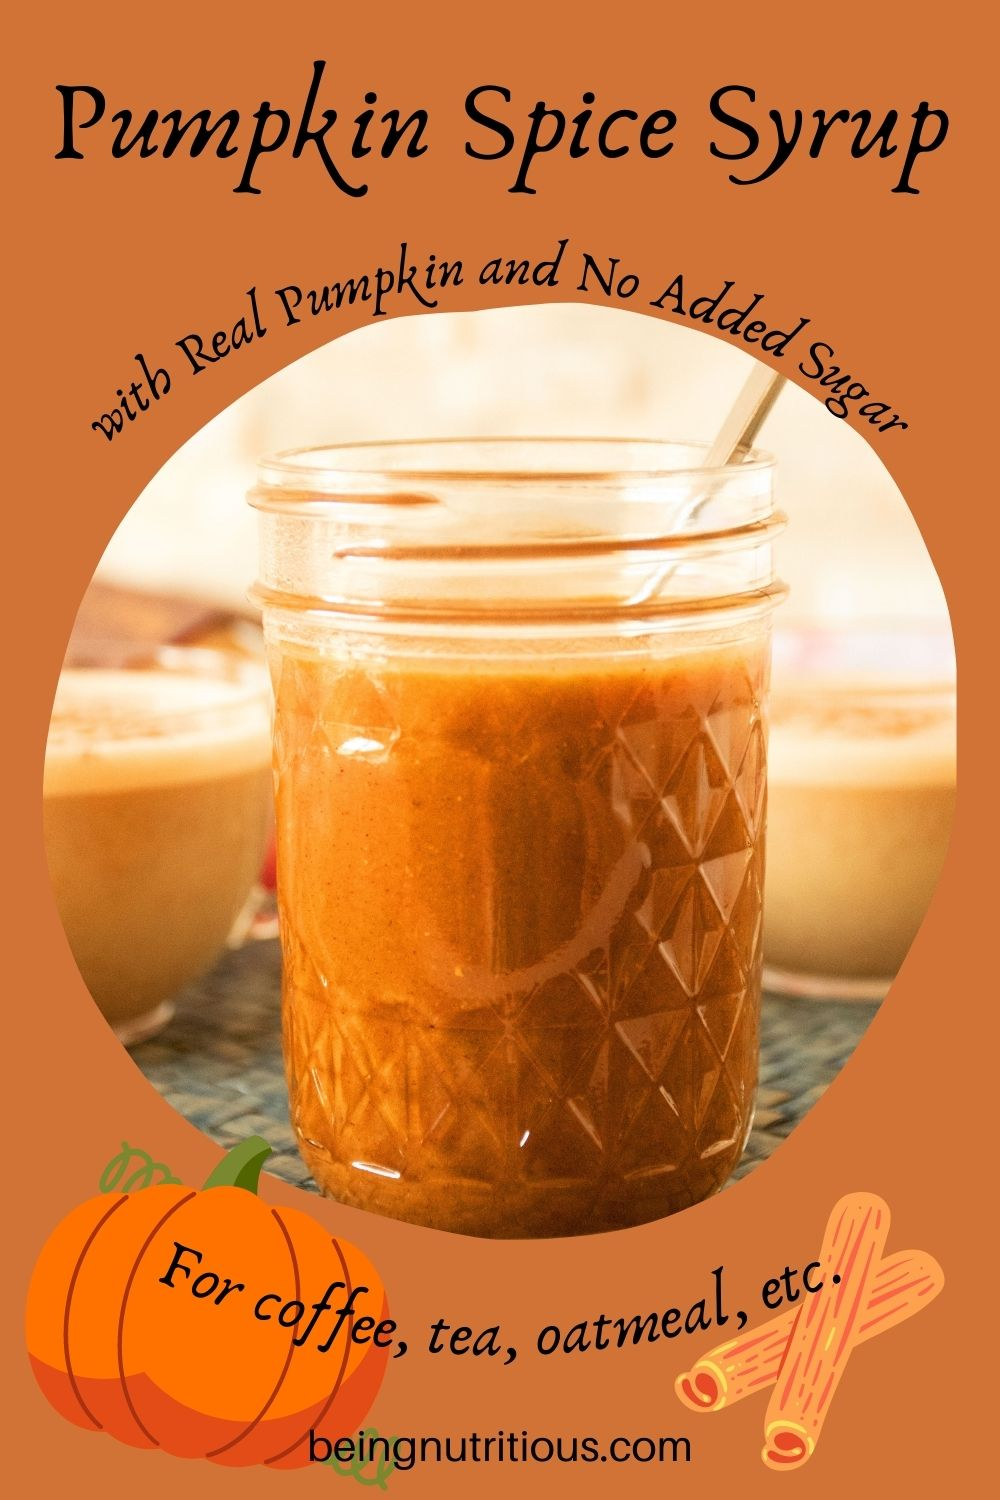 Jar of pumpkin spice syrup. Text around picture: Pumpkin Spice Syrup with real pumpkin and no added sugar. For coffee, tea, oatmeal, etc.